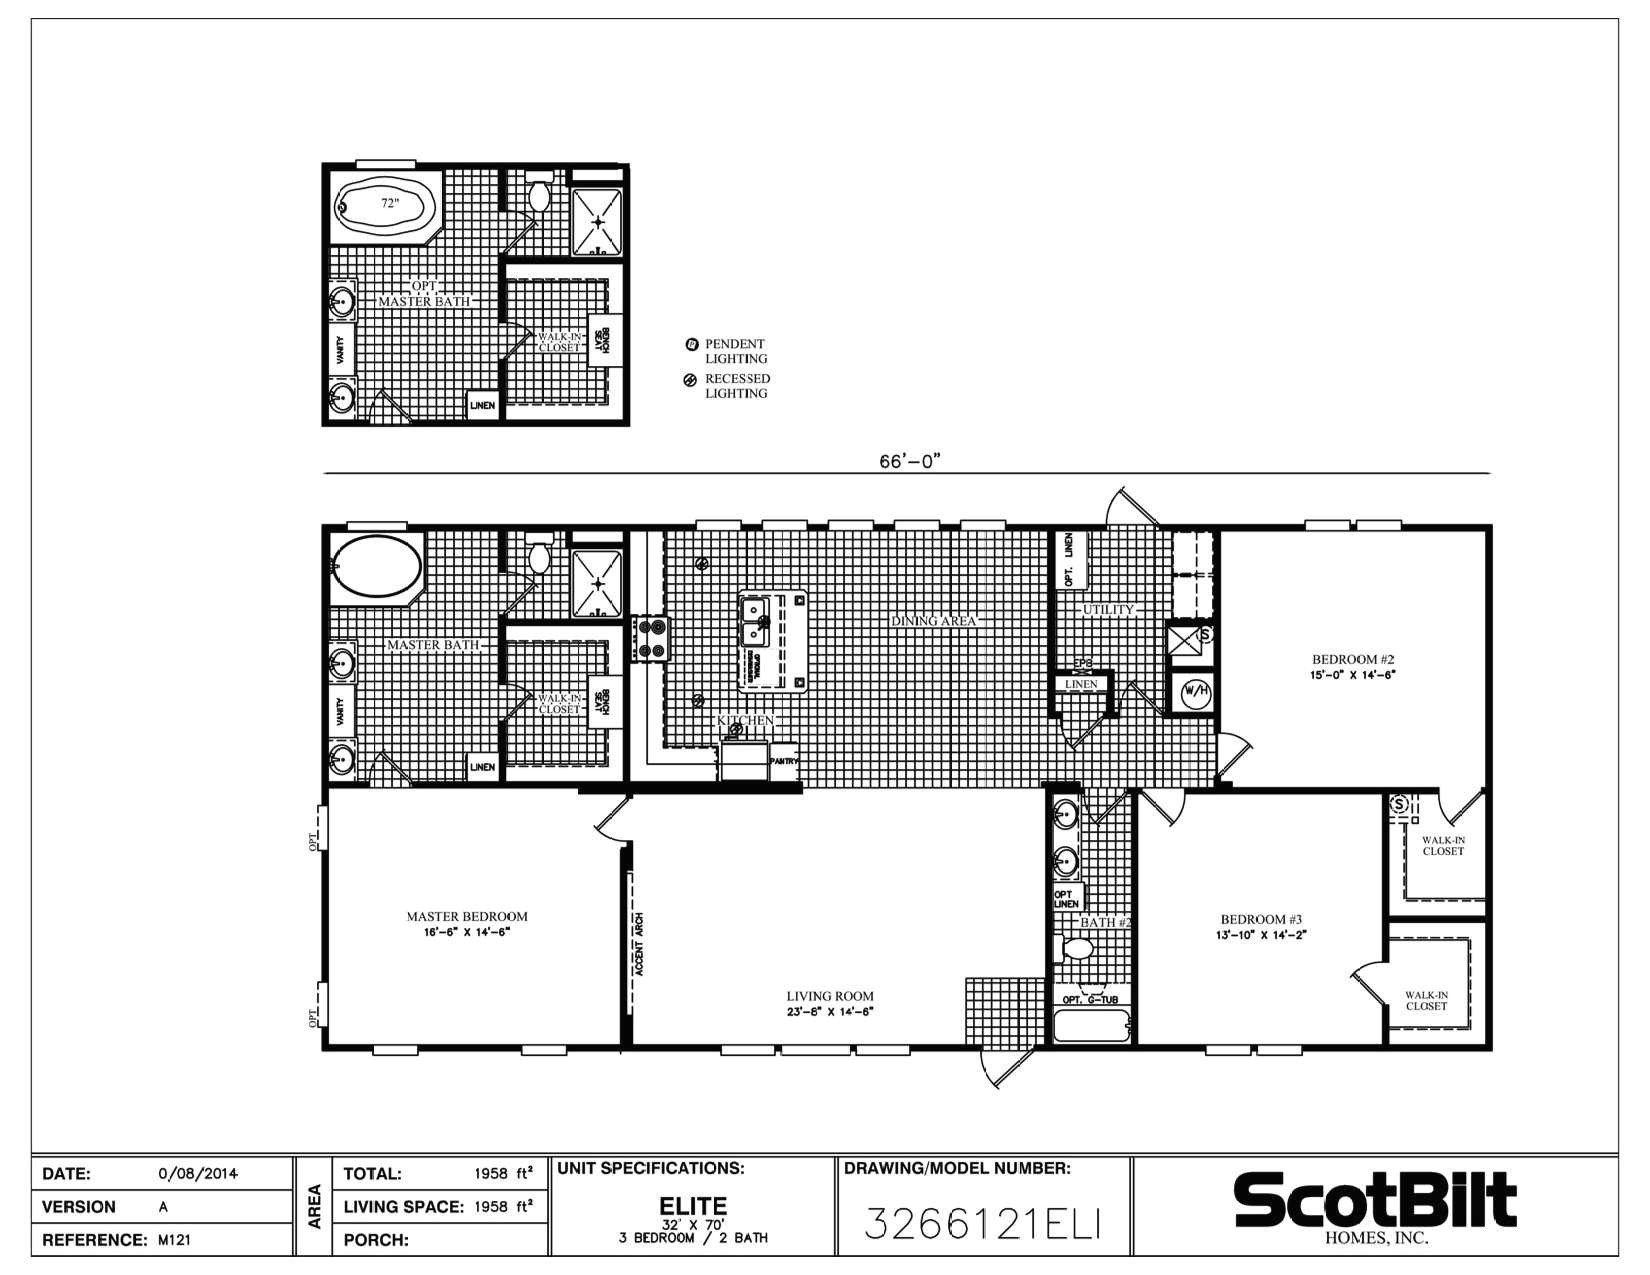 150k house plans and sinclair oconee homes 2